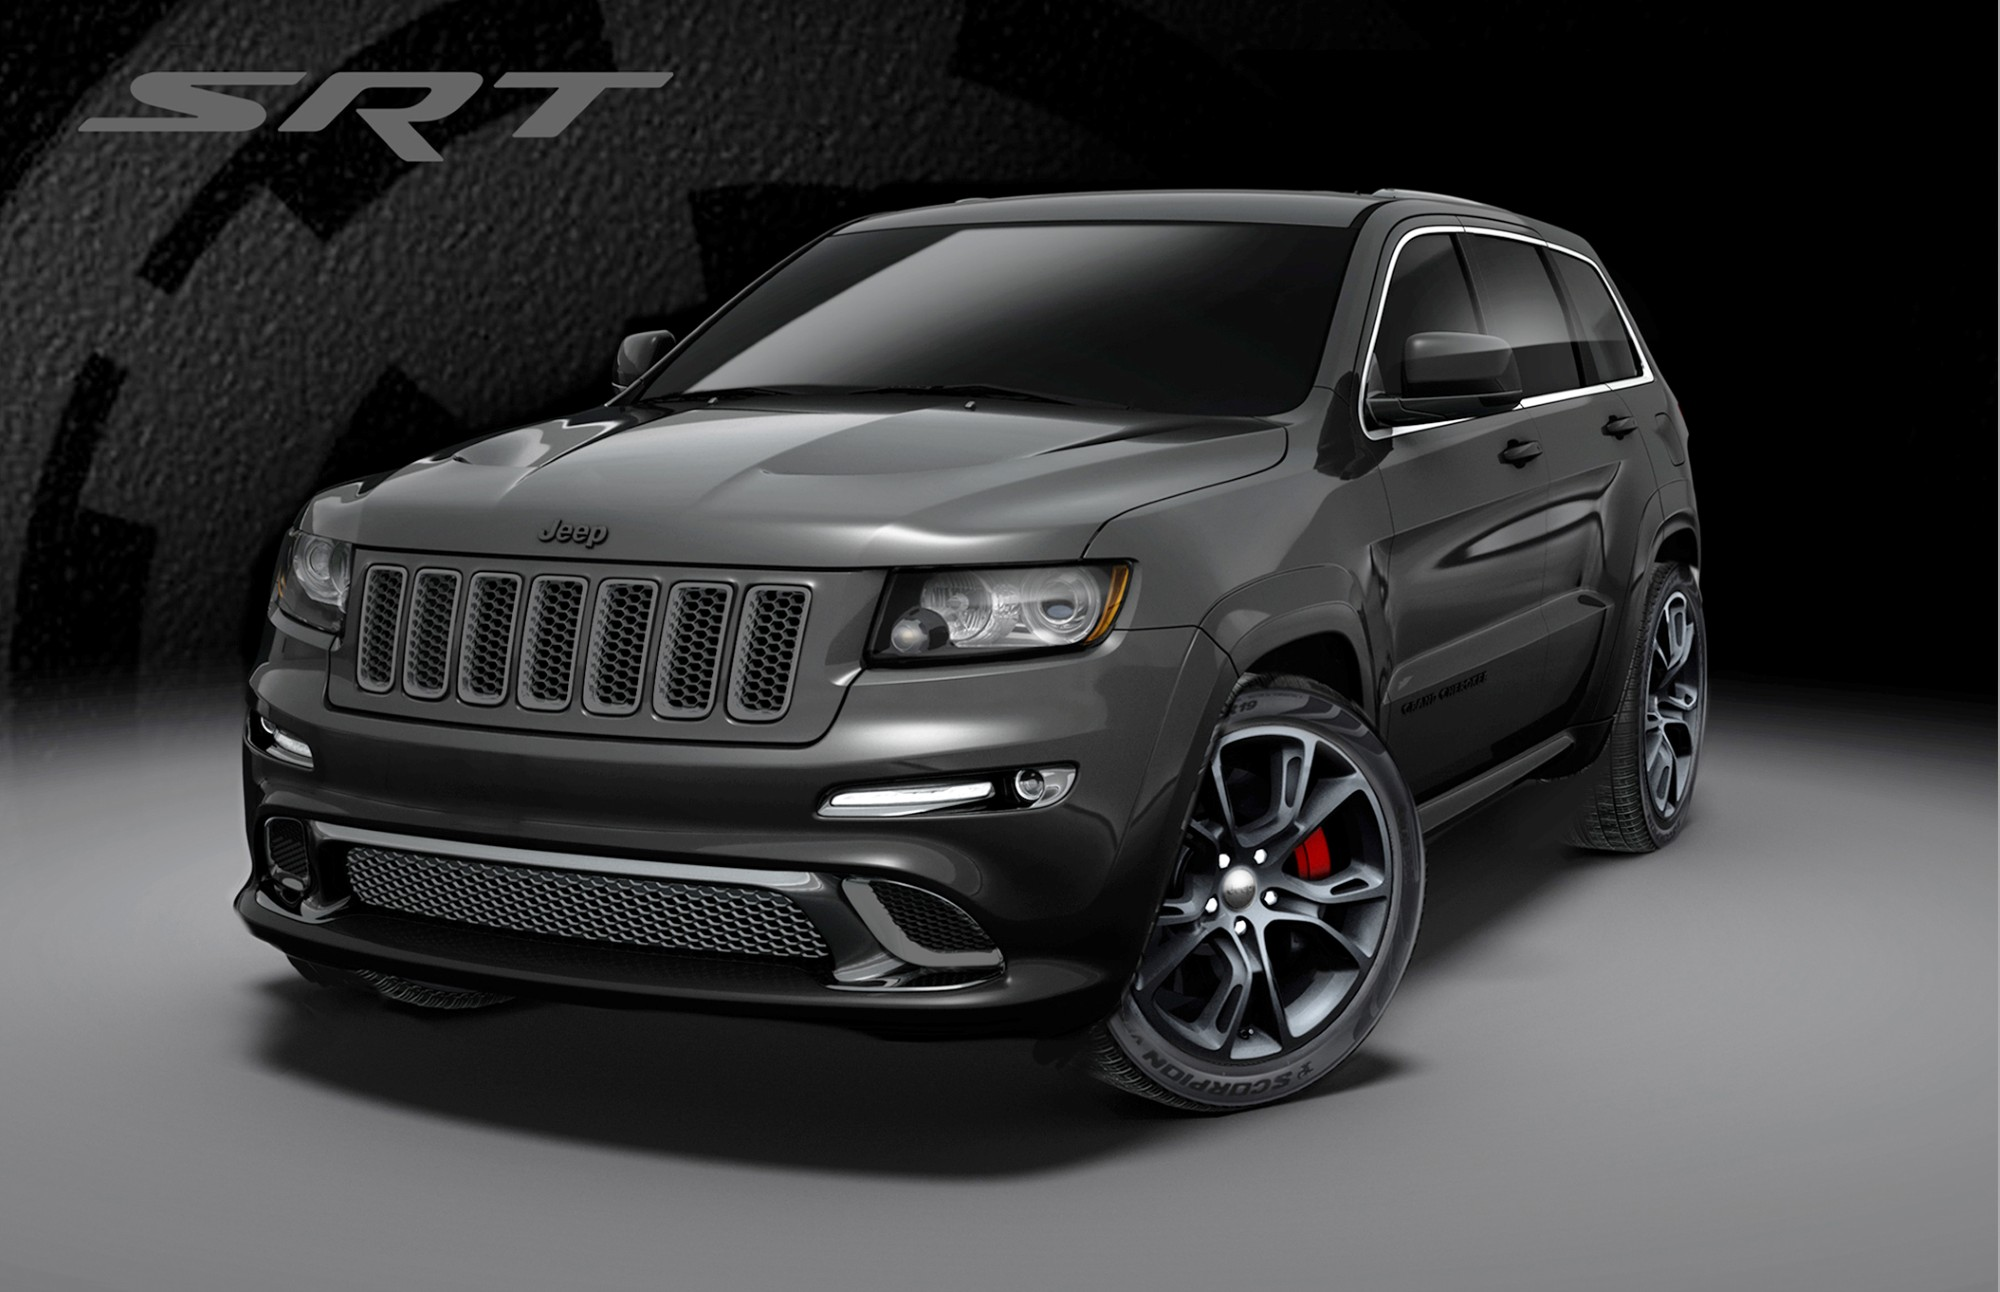 2013 jeep grand cherokee srt8 special editions alpine vapor. Black Bedroom Furniture Sets. Home Design Ideas